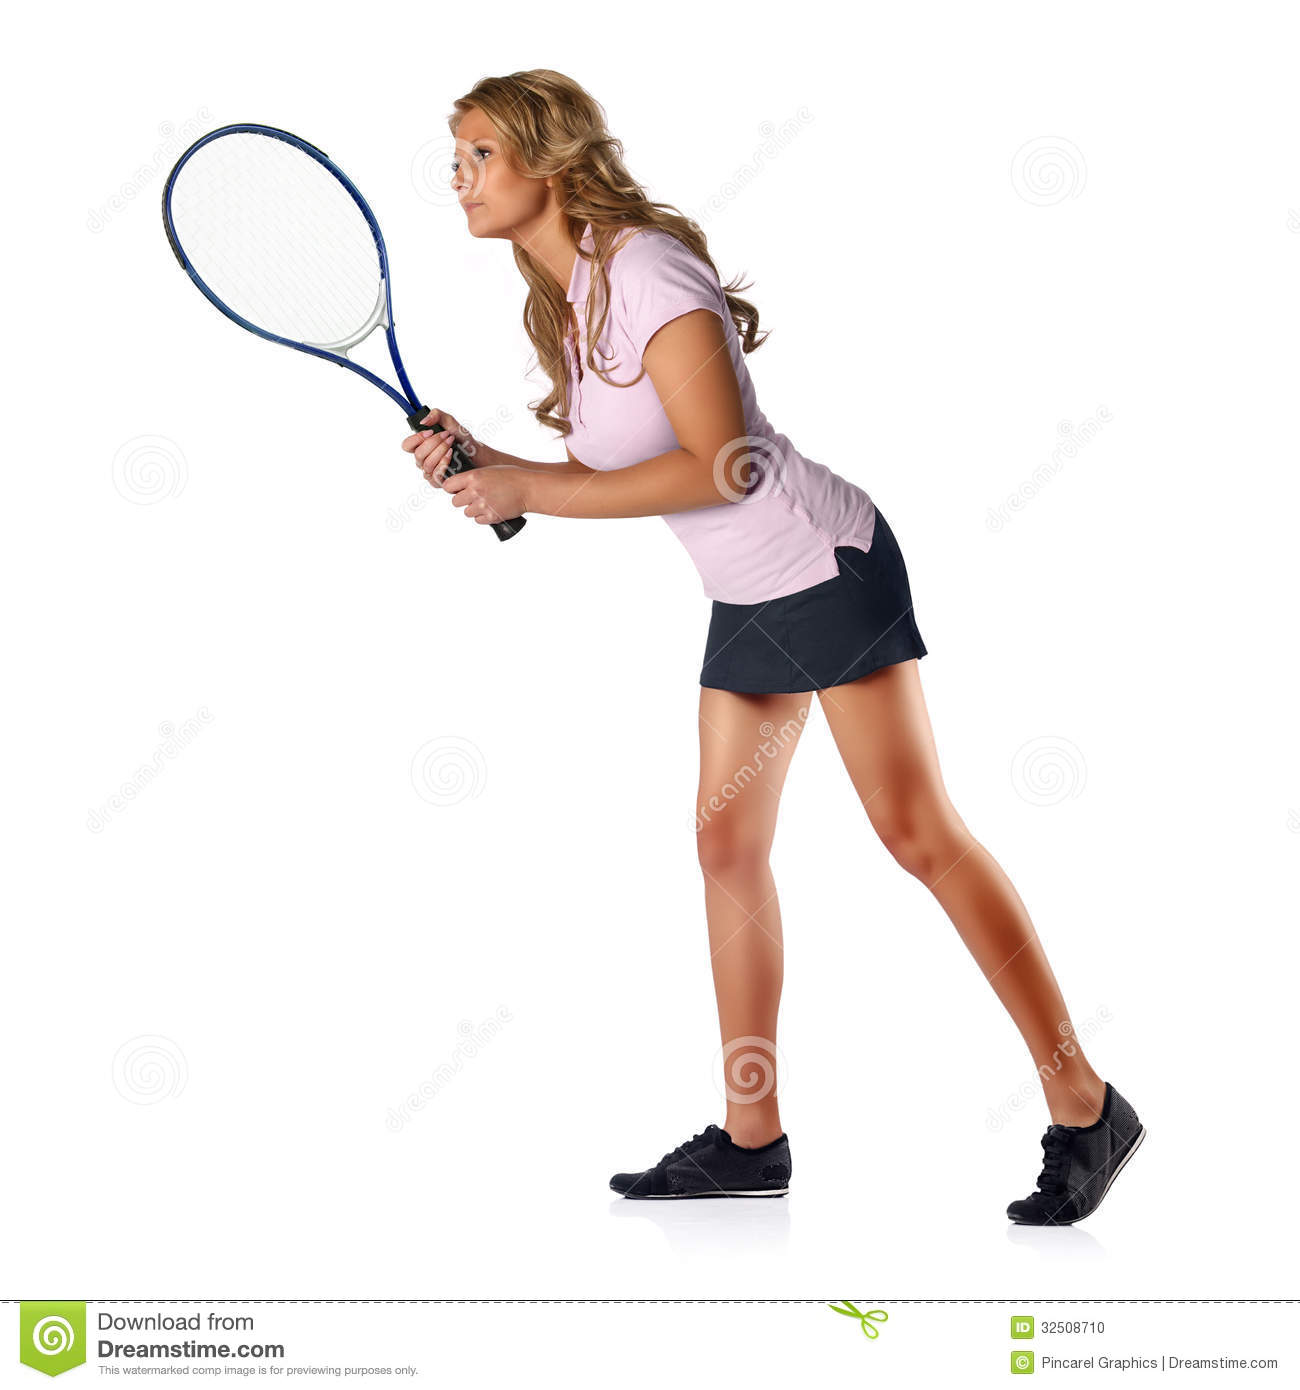 tennis woman awaiting serve stock photo - image of busty, leisure